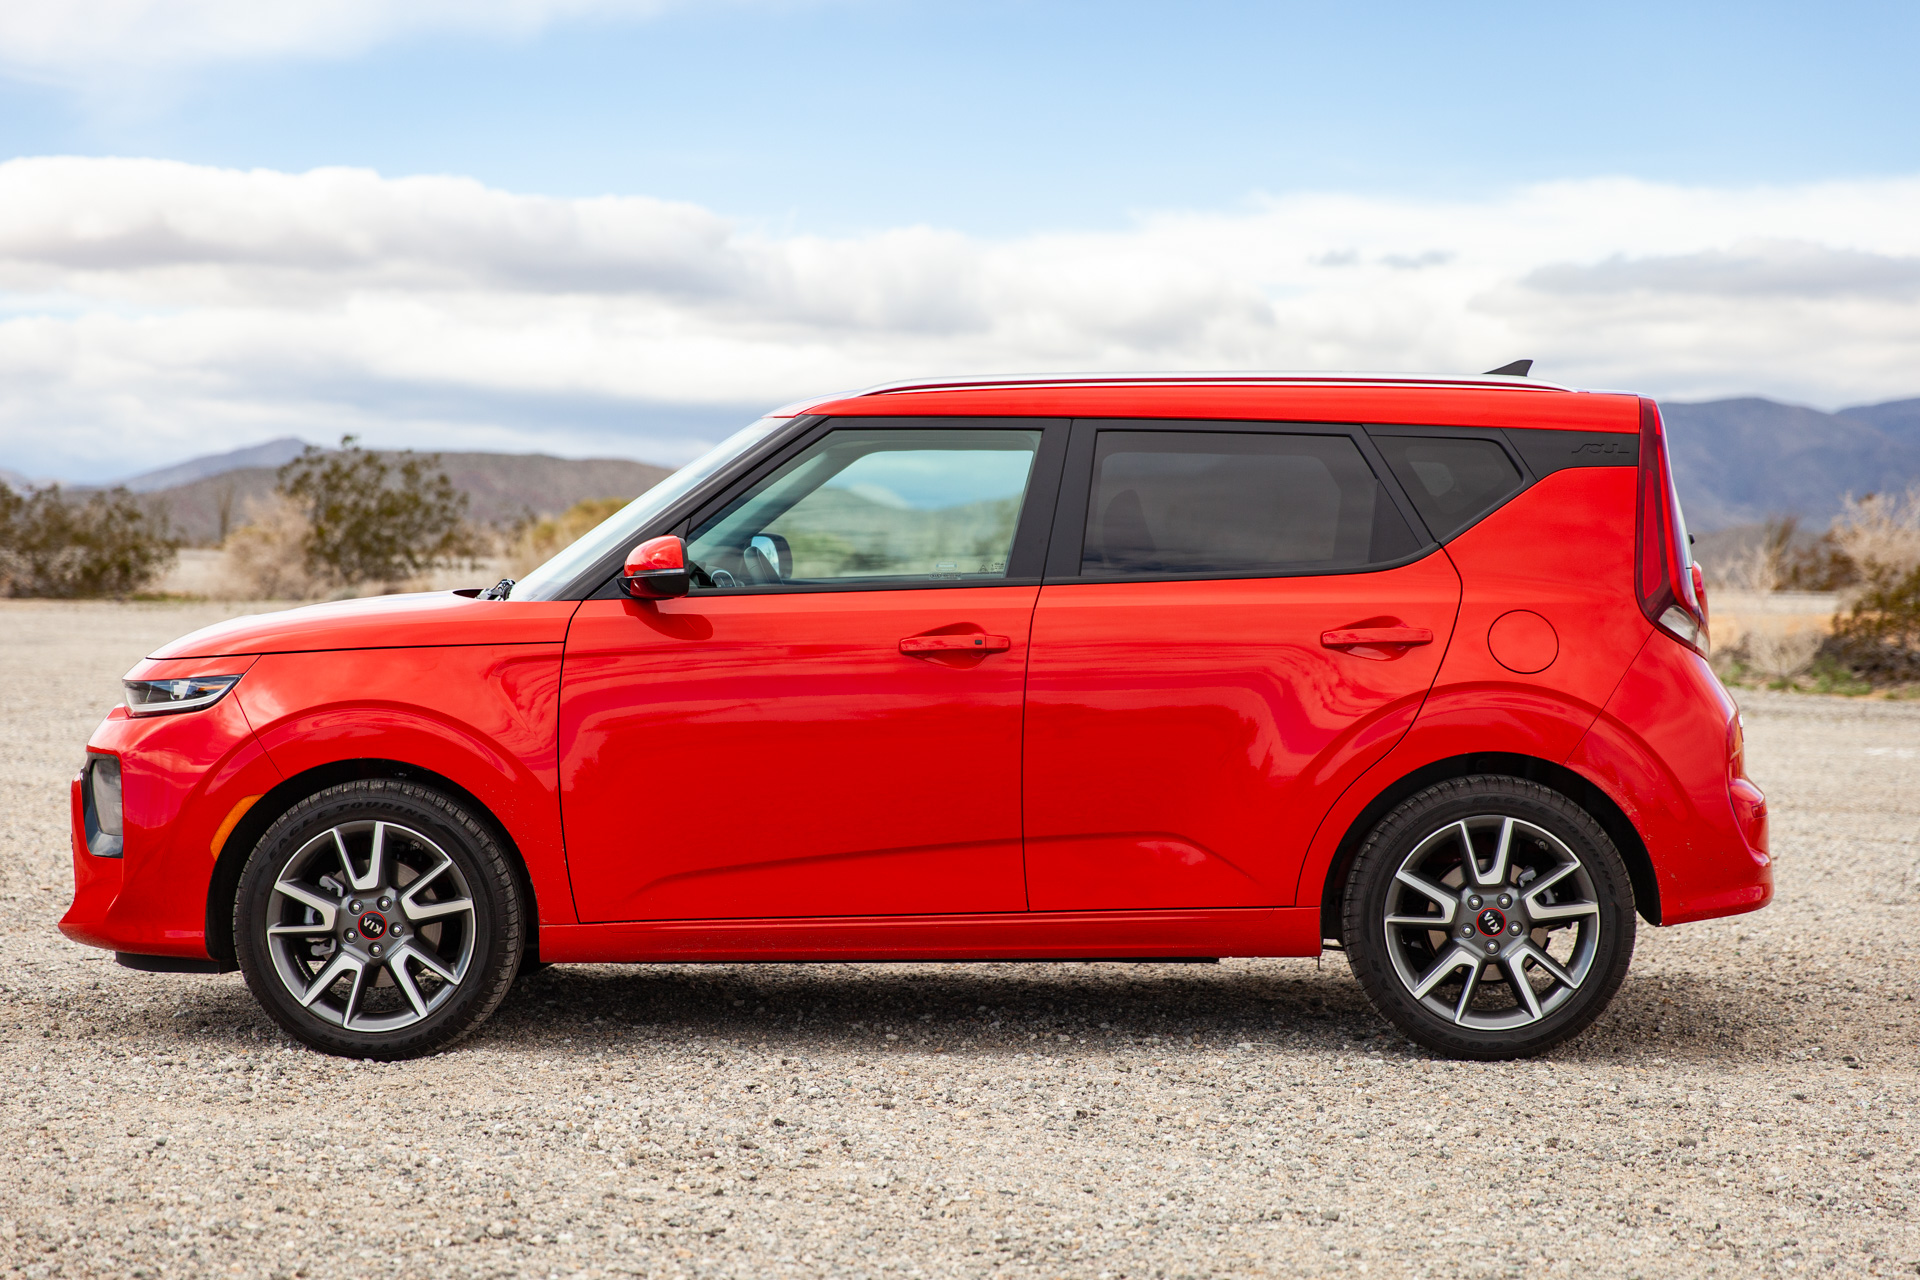 Groovy 2020 Kia Soul Review Ratings Specs Prices And Photos Alphanode Cool Chair Designs And Ideas Alphanodeonline